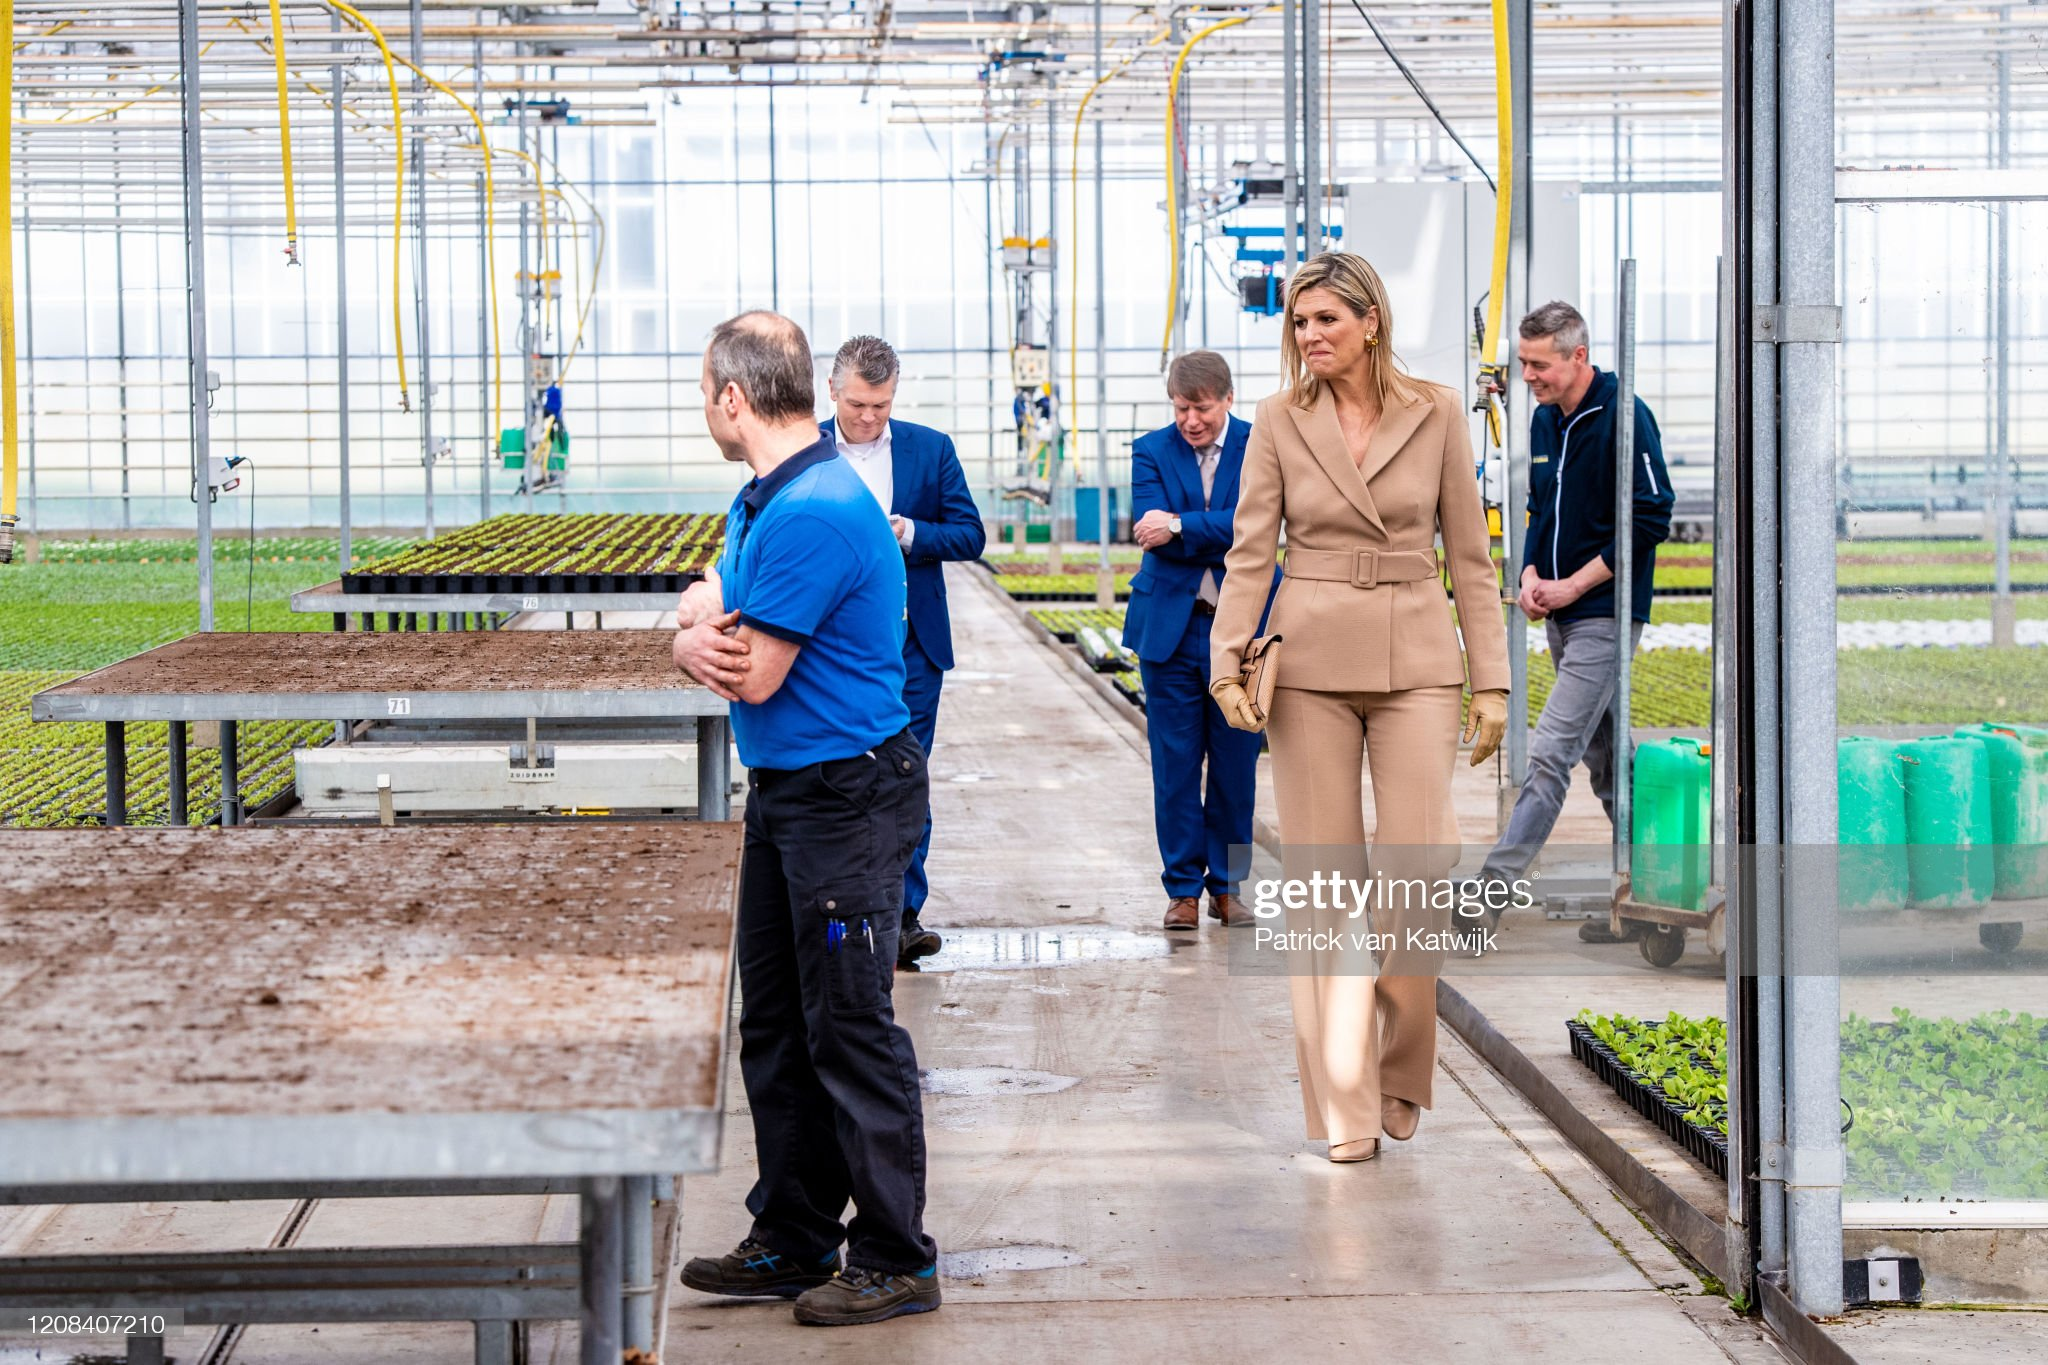 https://media.gettyimages.com/photos/queen-maxima-of-the-netherlands-visits-zuidbaak-floriculture-company-picture-id1208407210?s=2048x2048